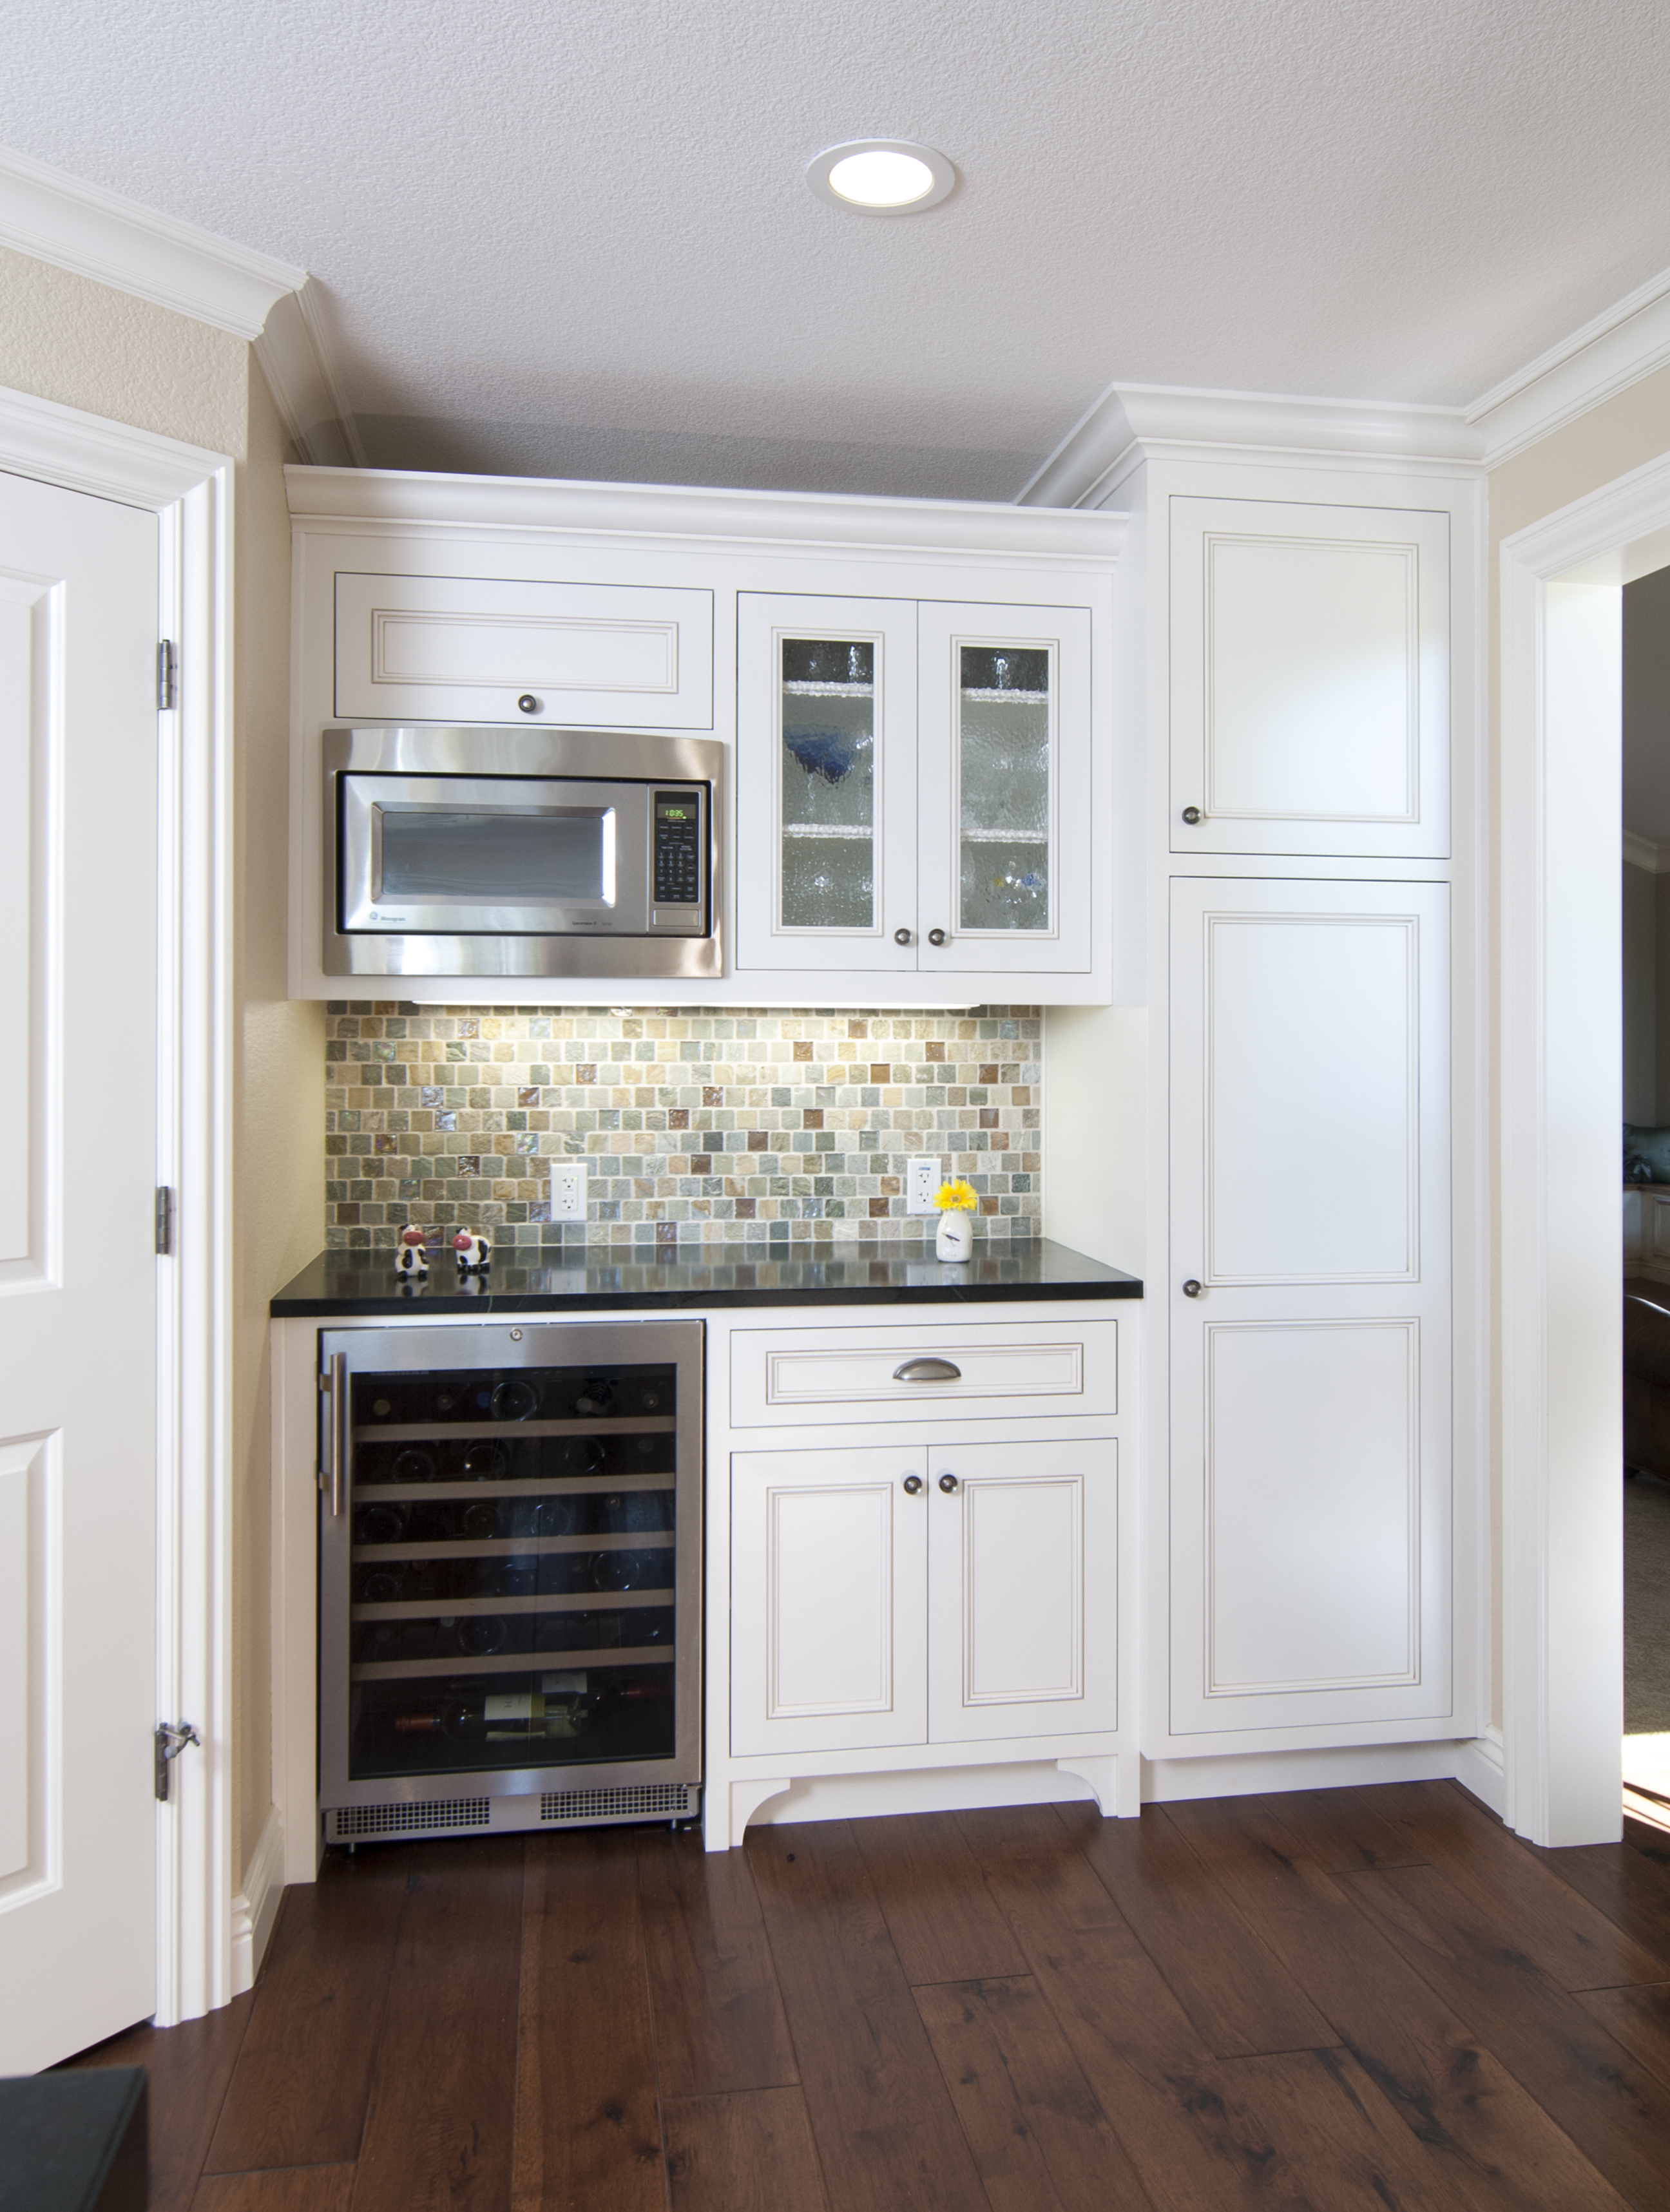 Transitional White Wine Bar with a Built-In Wine Cellar, Decorative Glass Doors and Chrome Hardware